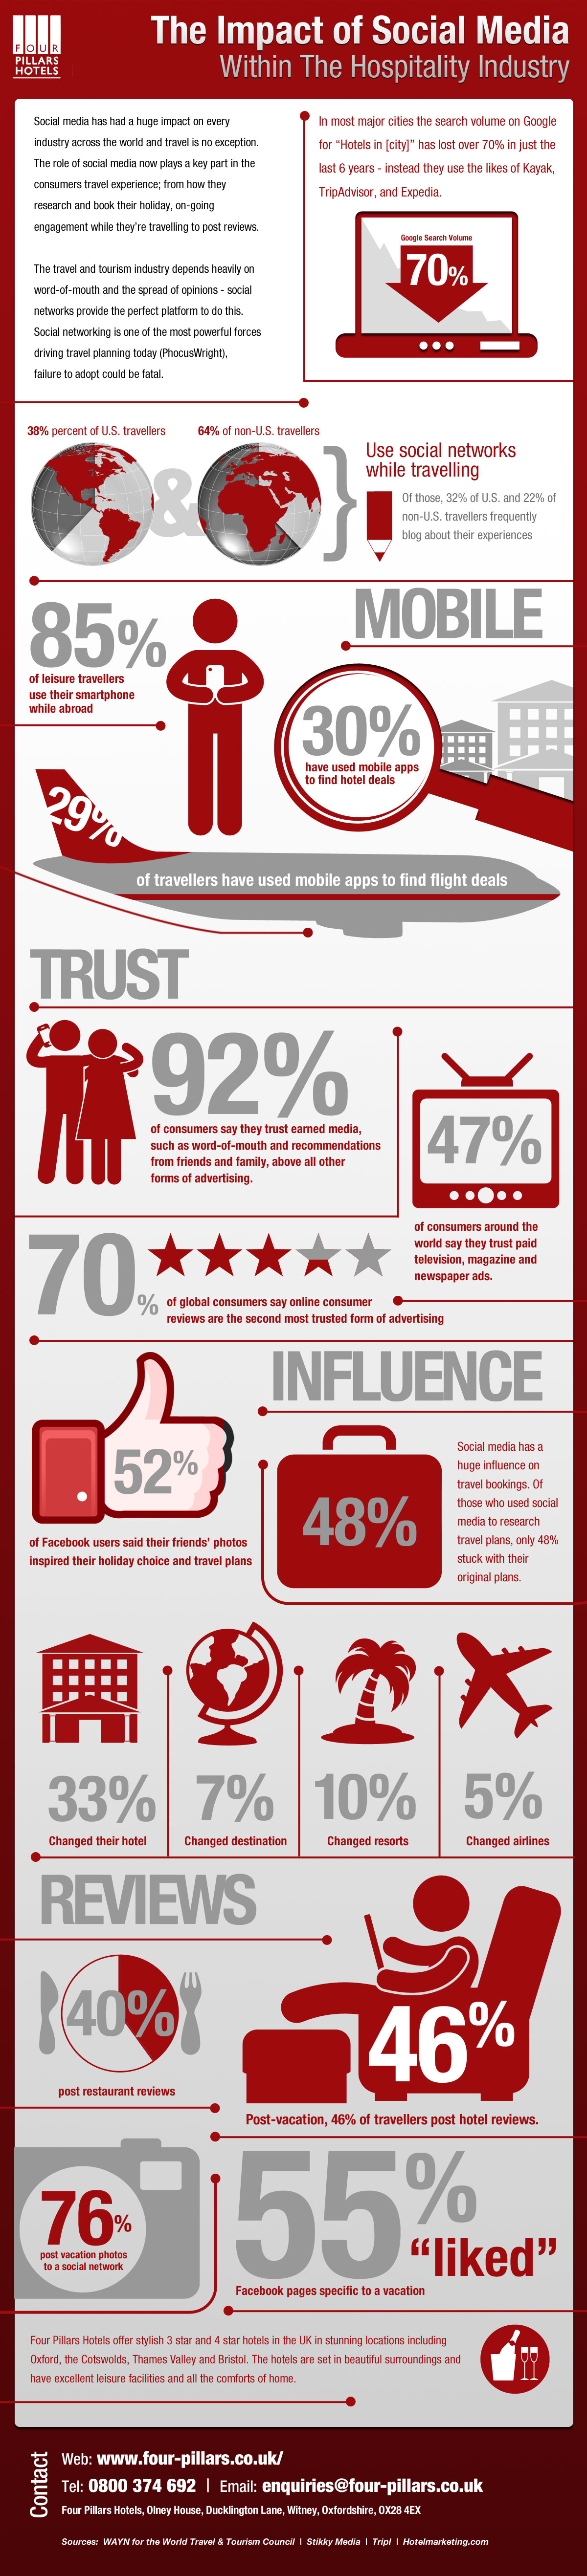 The Impact of Social Media on the Hospitality Industry